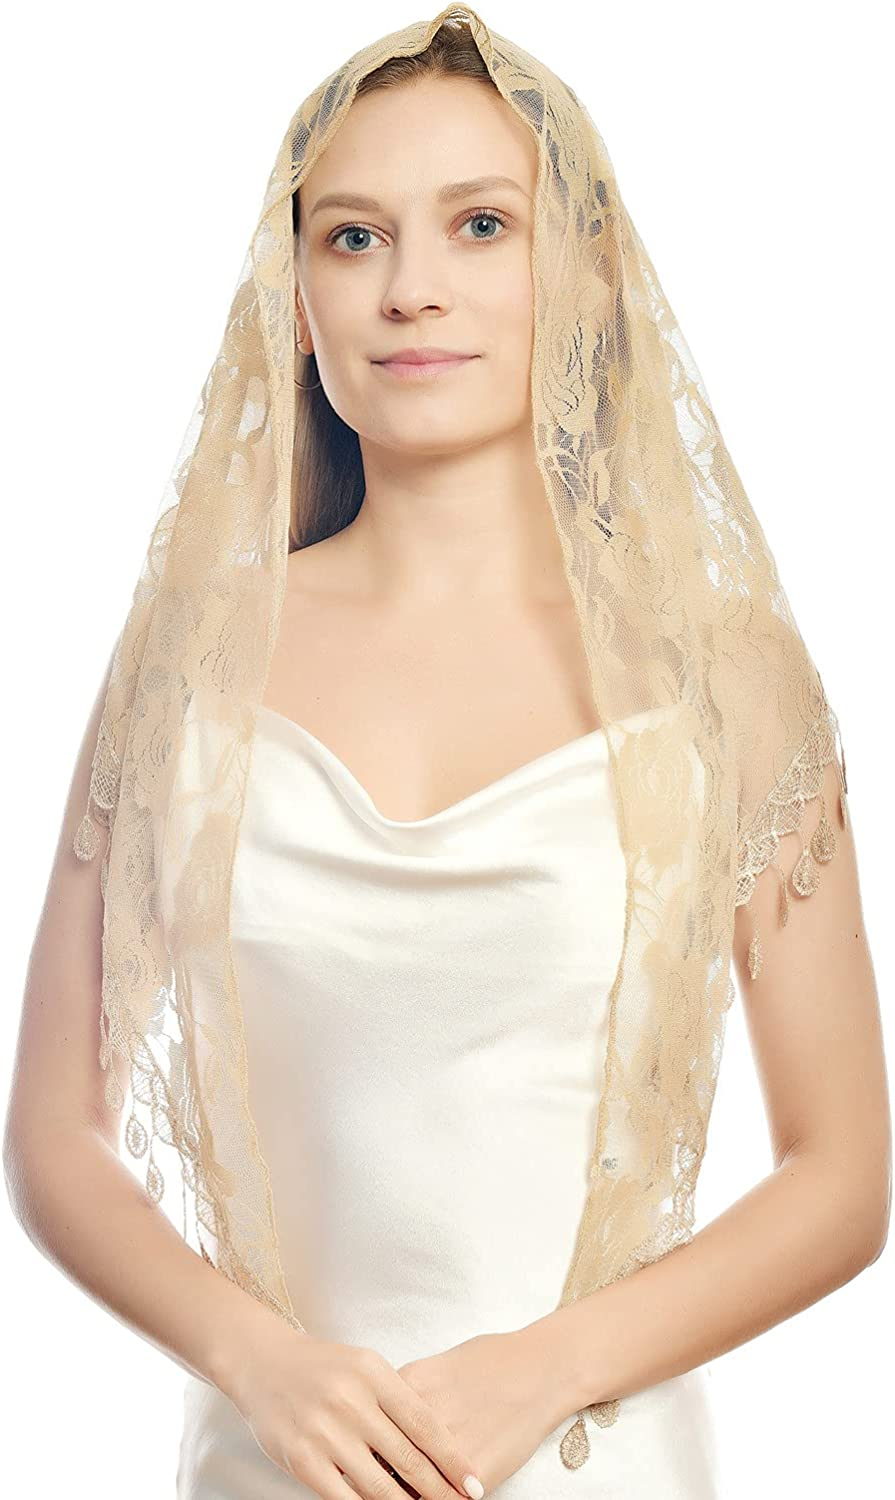 Lace veil Triangle Mantilla Cathedral Head Covering Chapel Veil Lace Shawl Latin Scarf